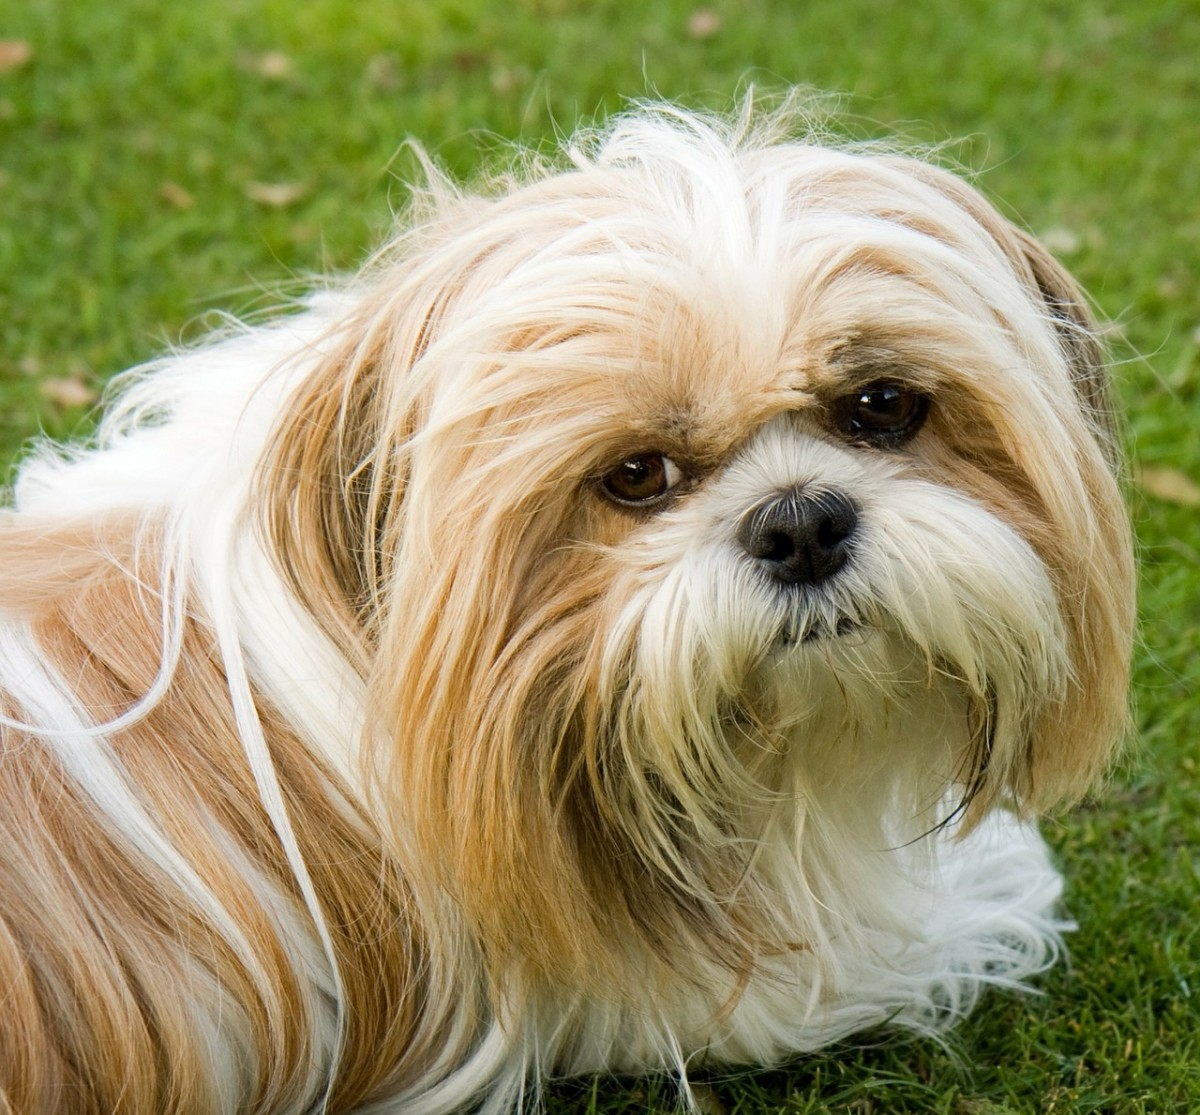 Up-close photo of the lovable Shih Tzu.  Average lifespan for this breed is 10 to 18 years.